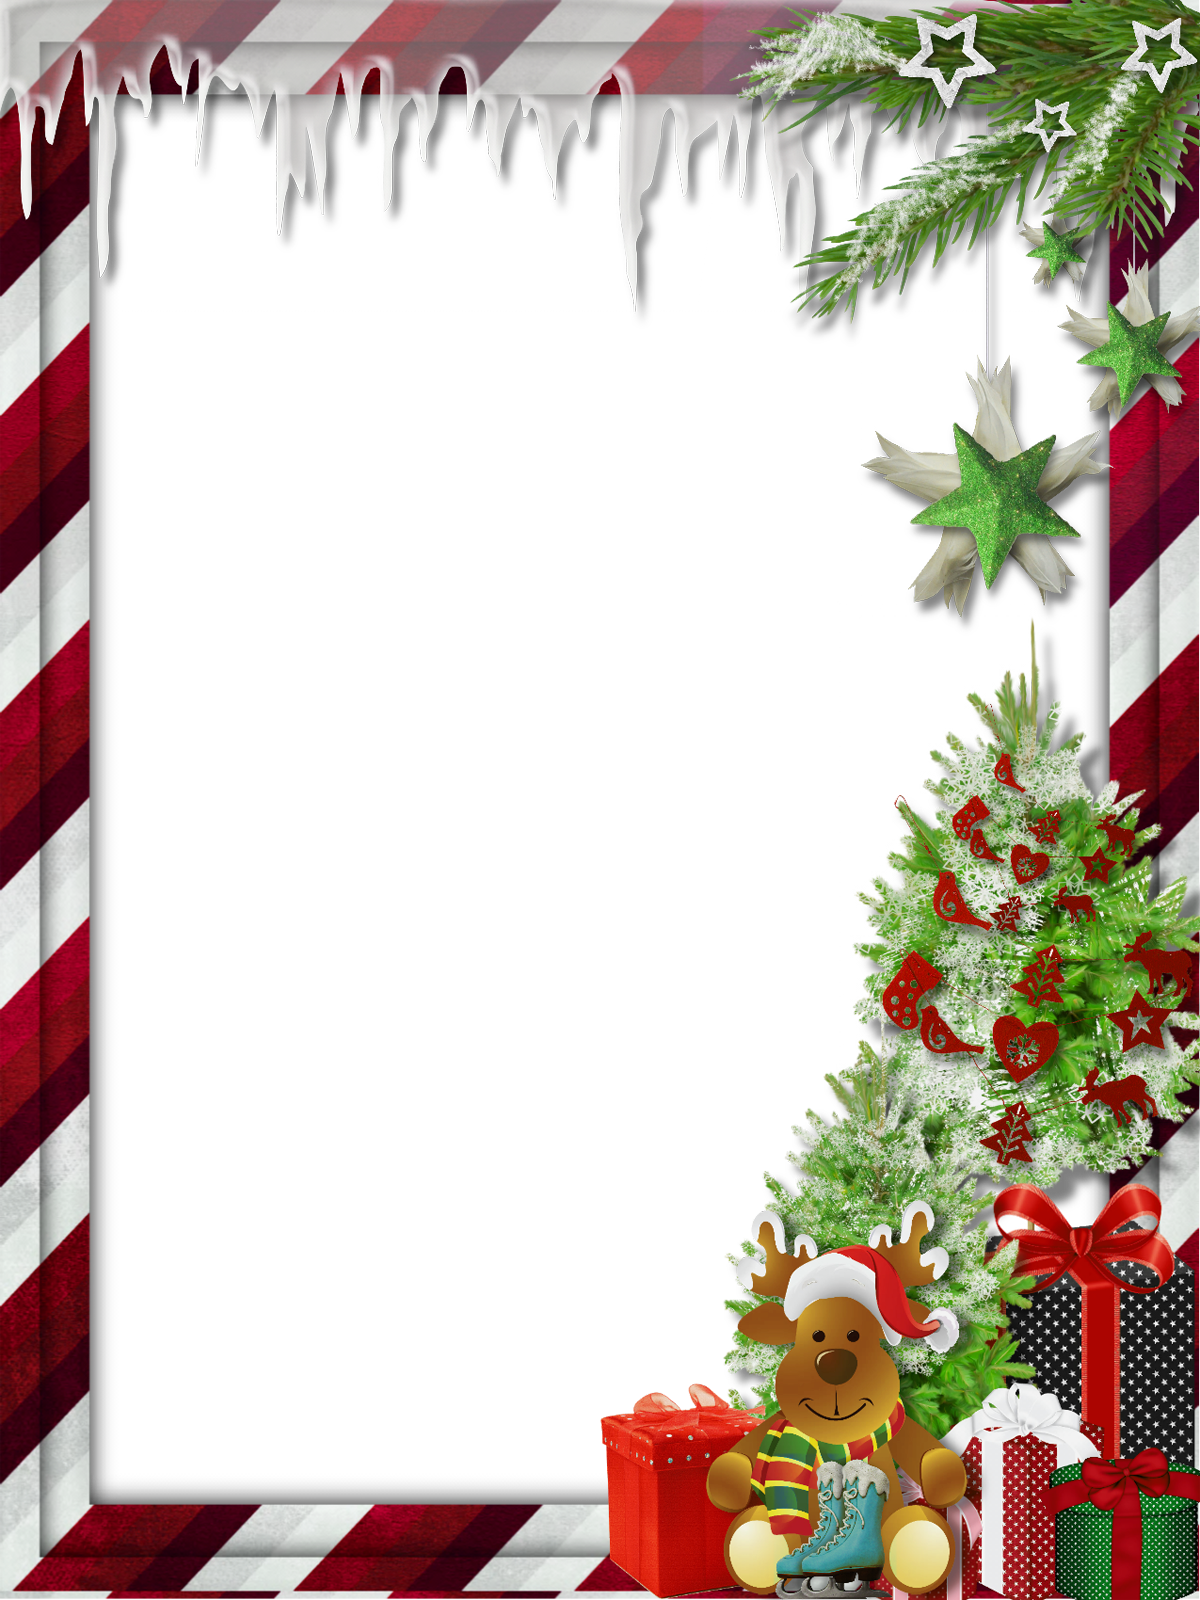 Worm clipart christmas. Transparent photo frame with